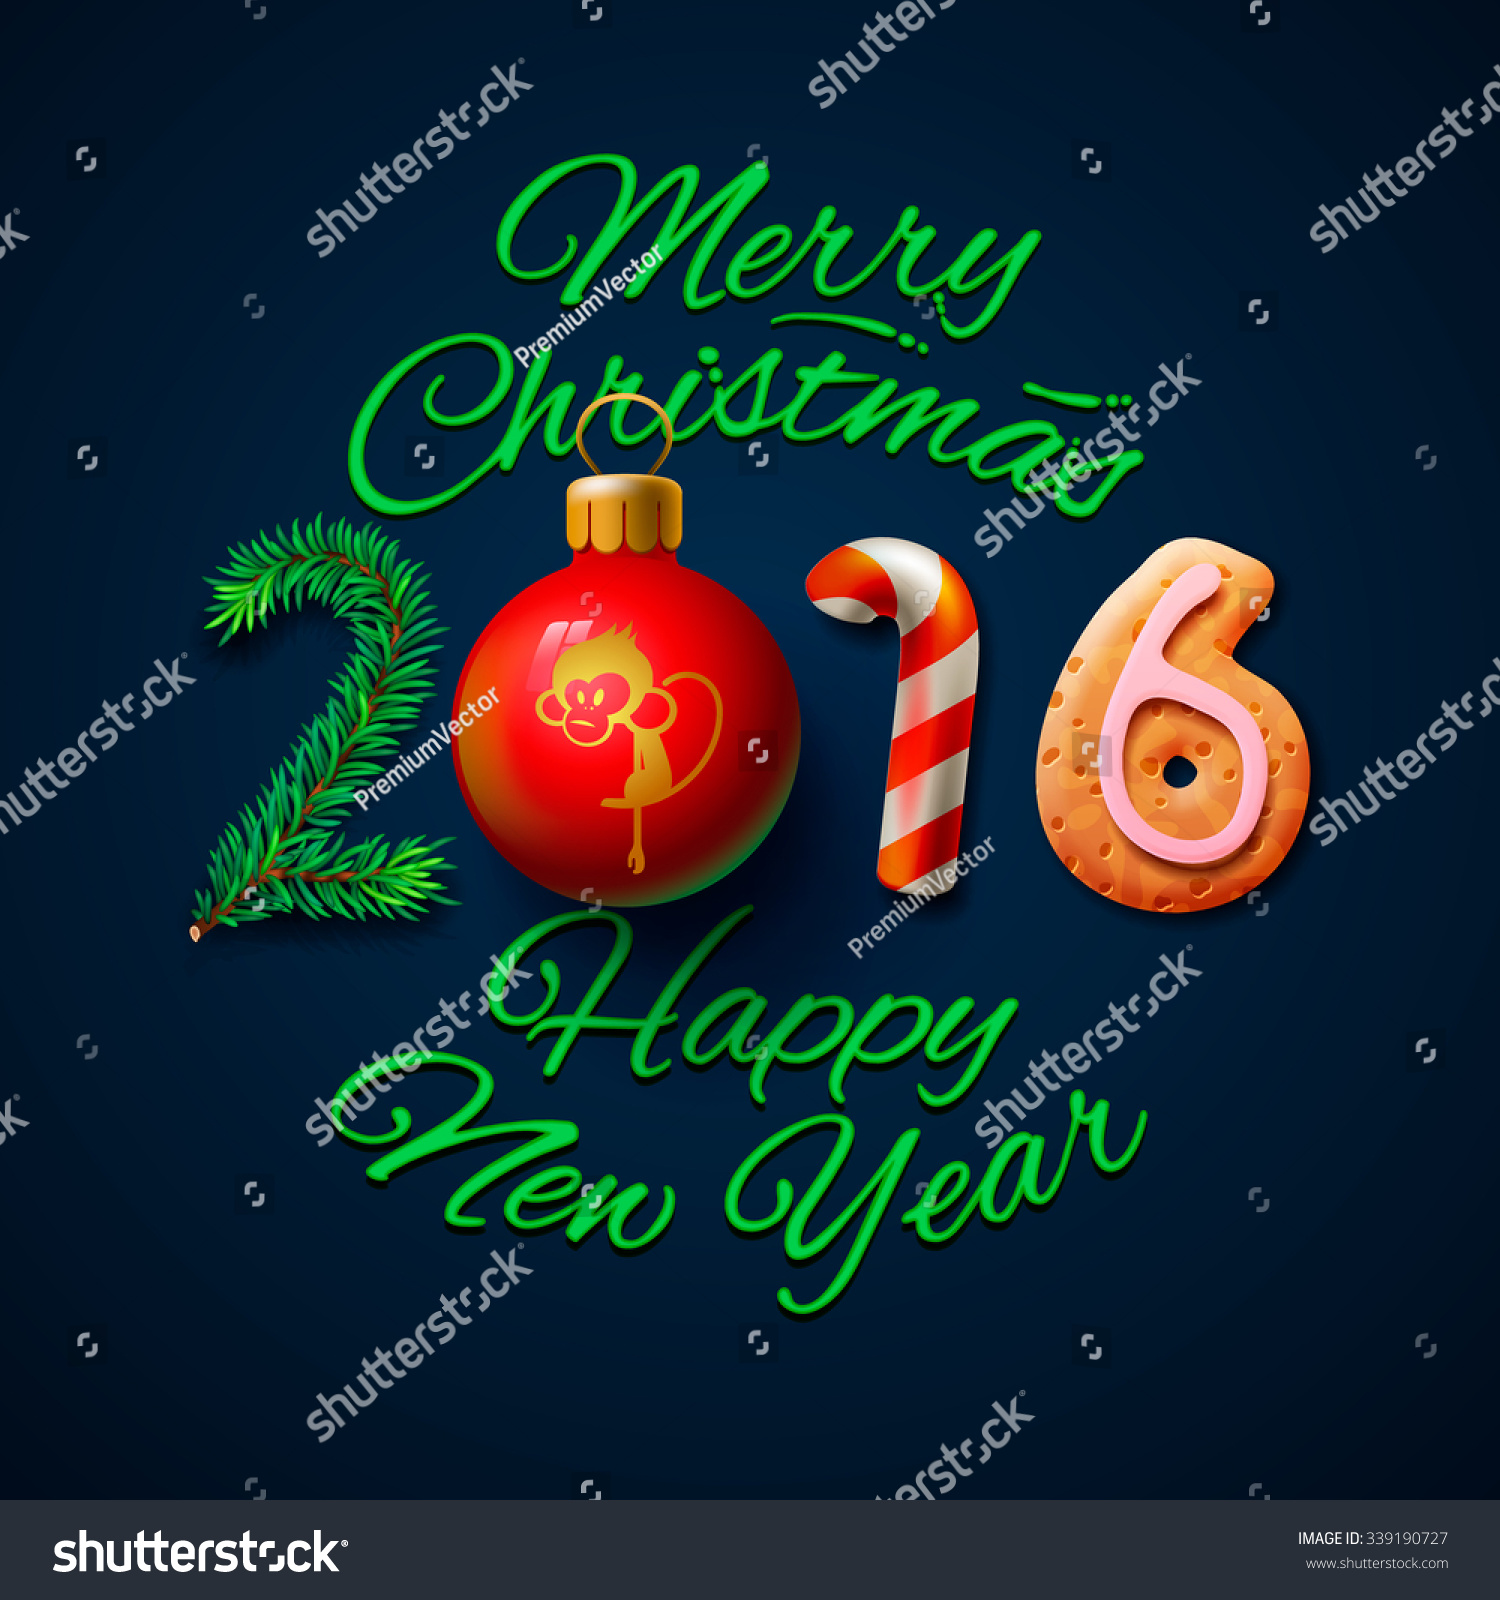 Merry Christmas Happy New Year 2016 Stock Vector 339190727